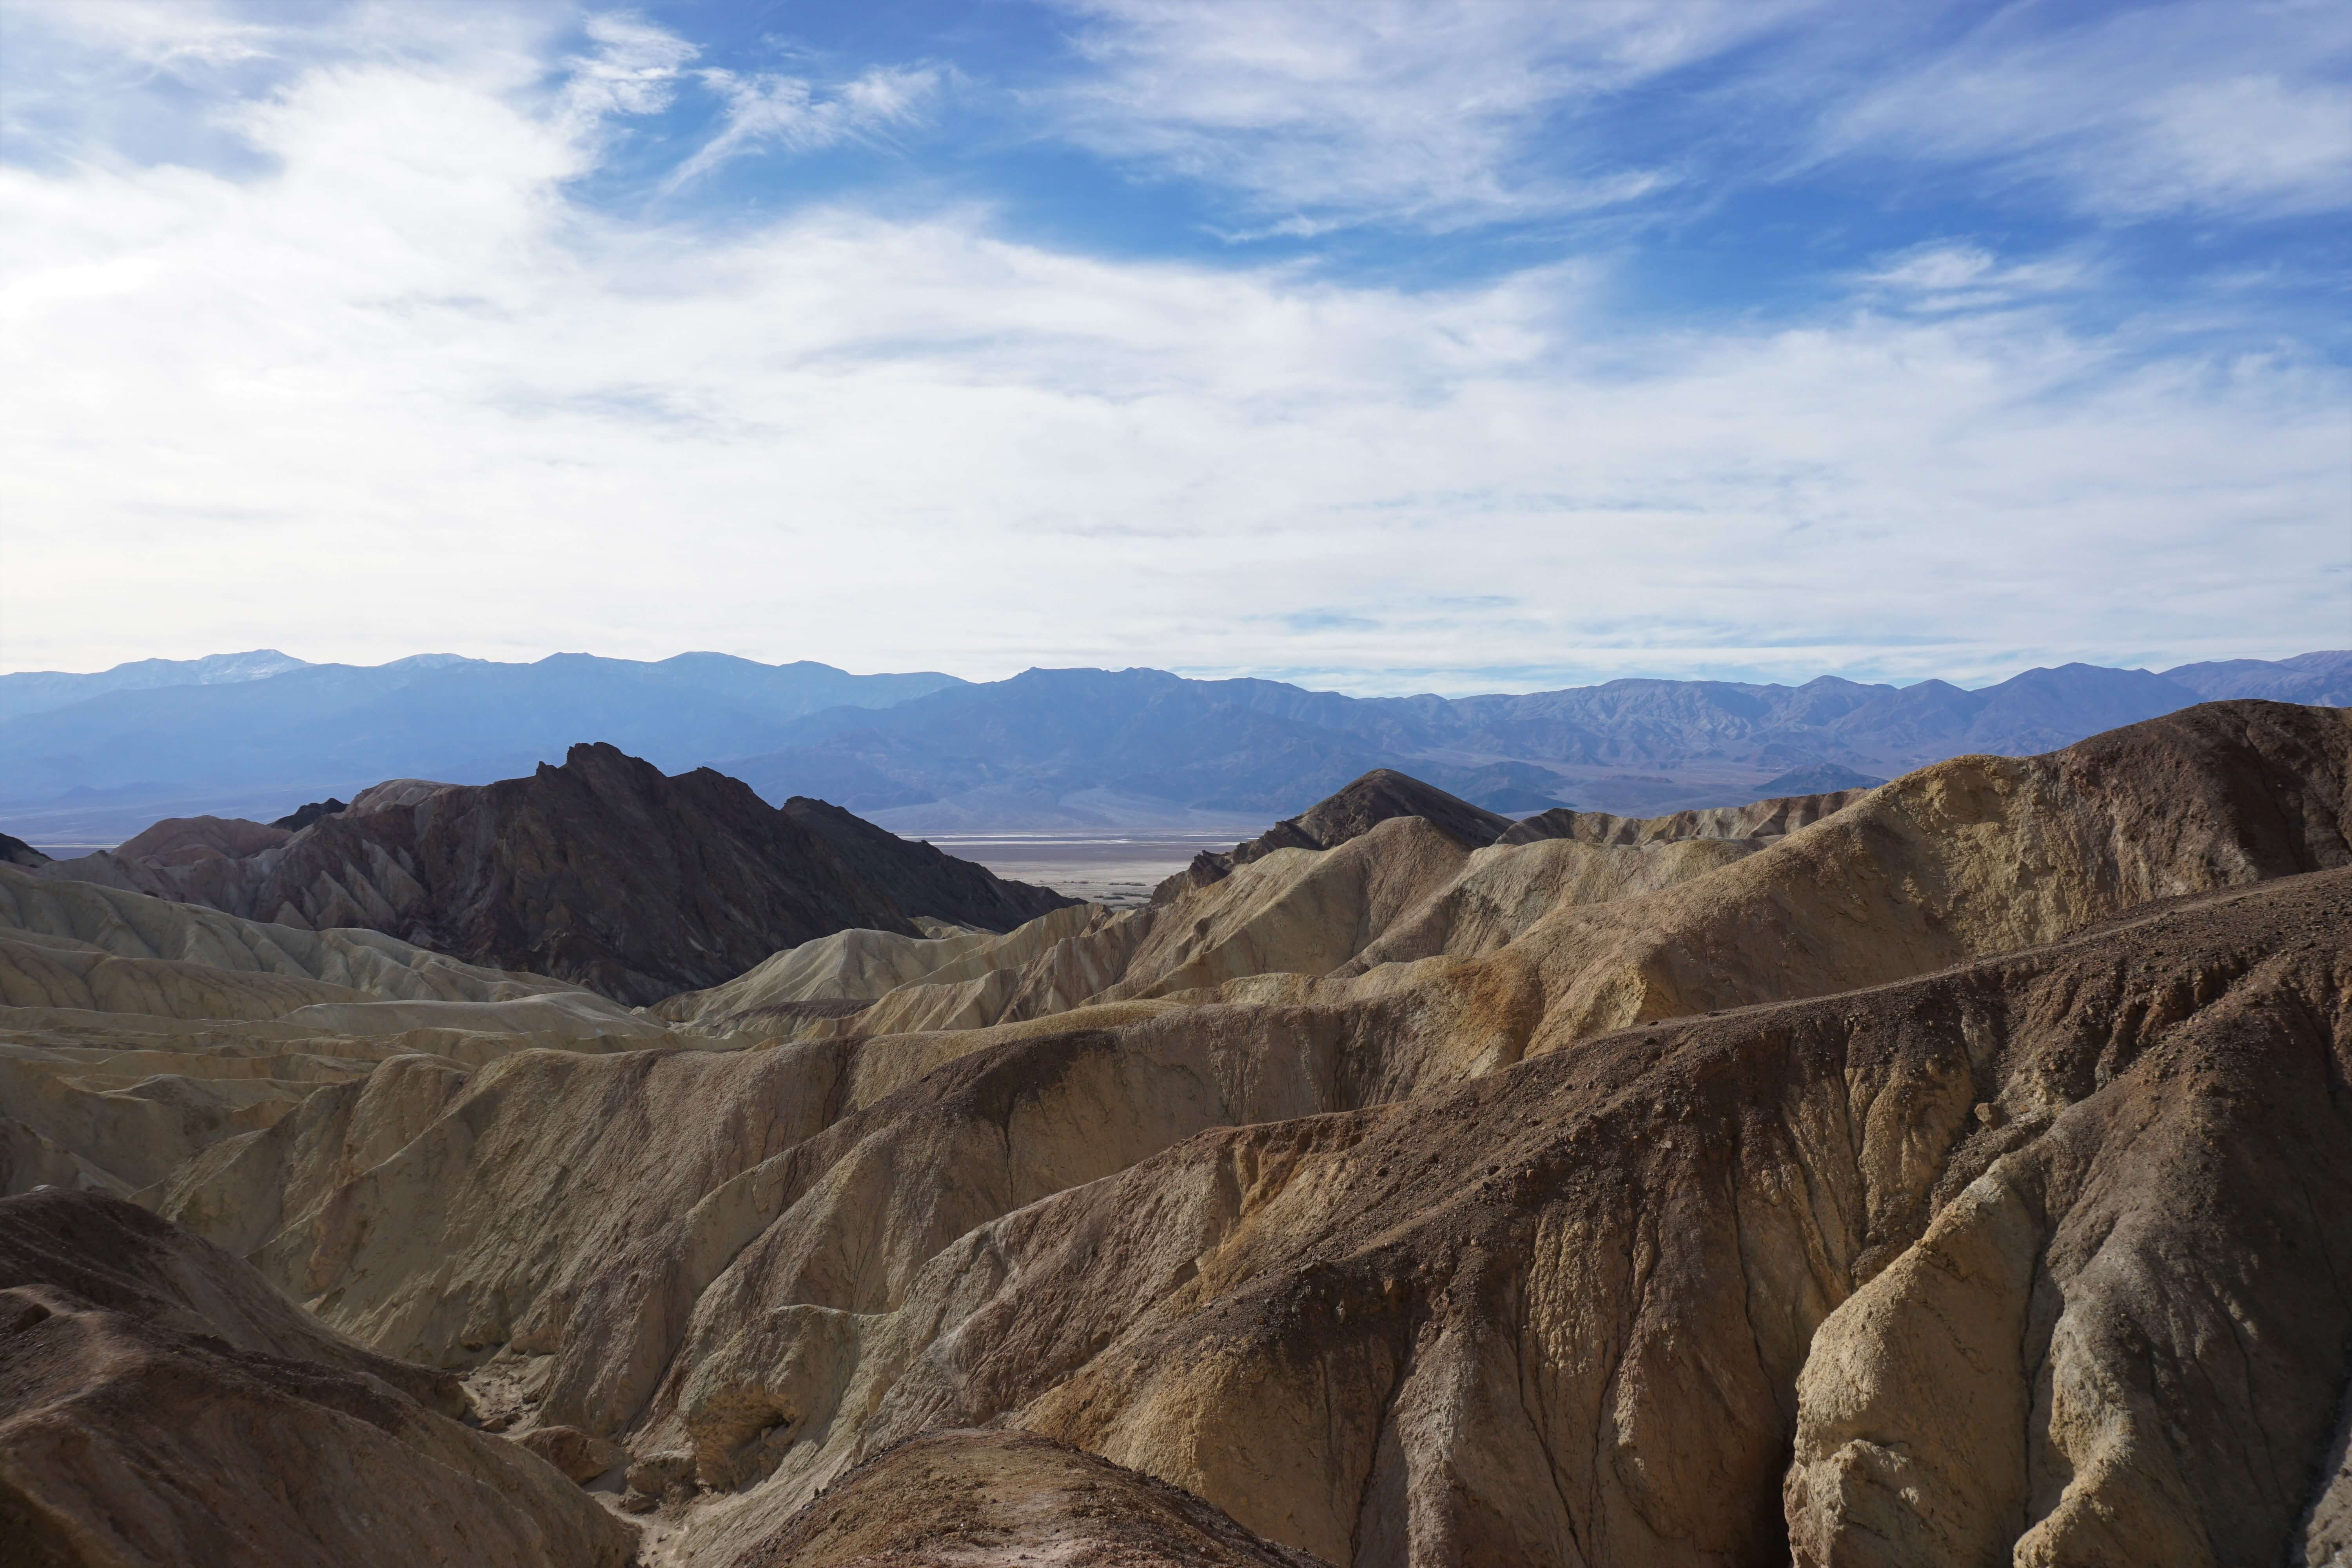 Golden Canyon hiking trail in Death Valley National Park